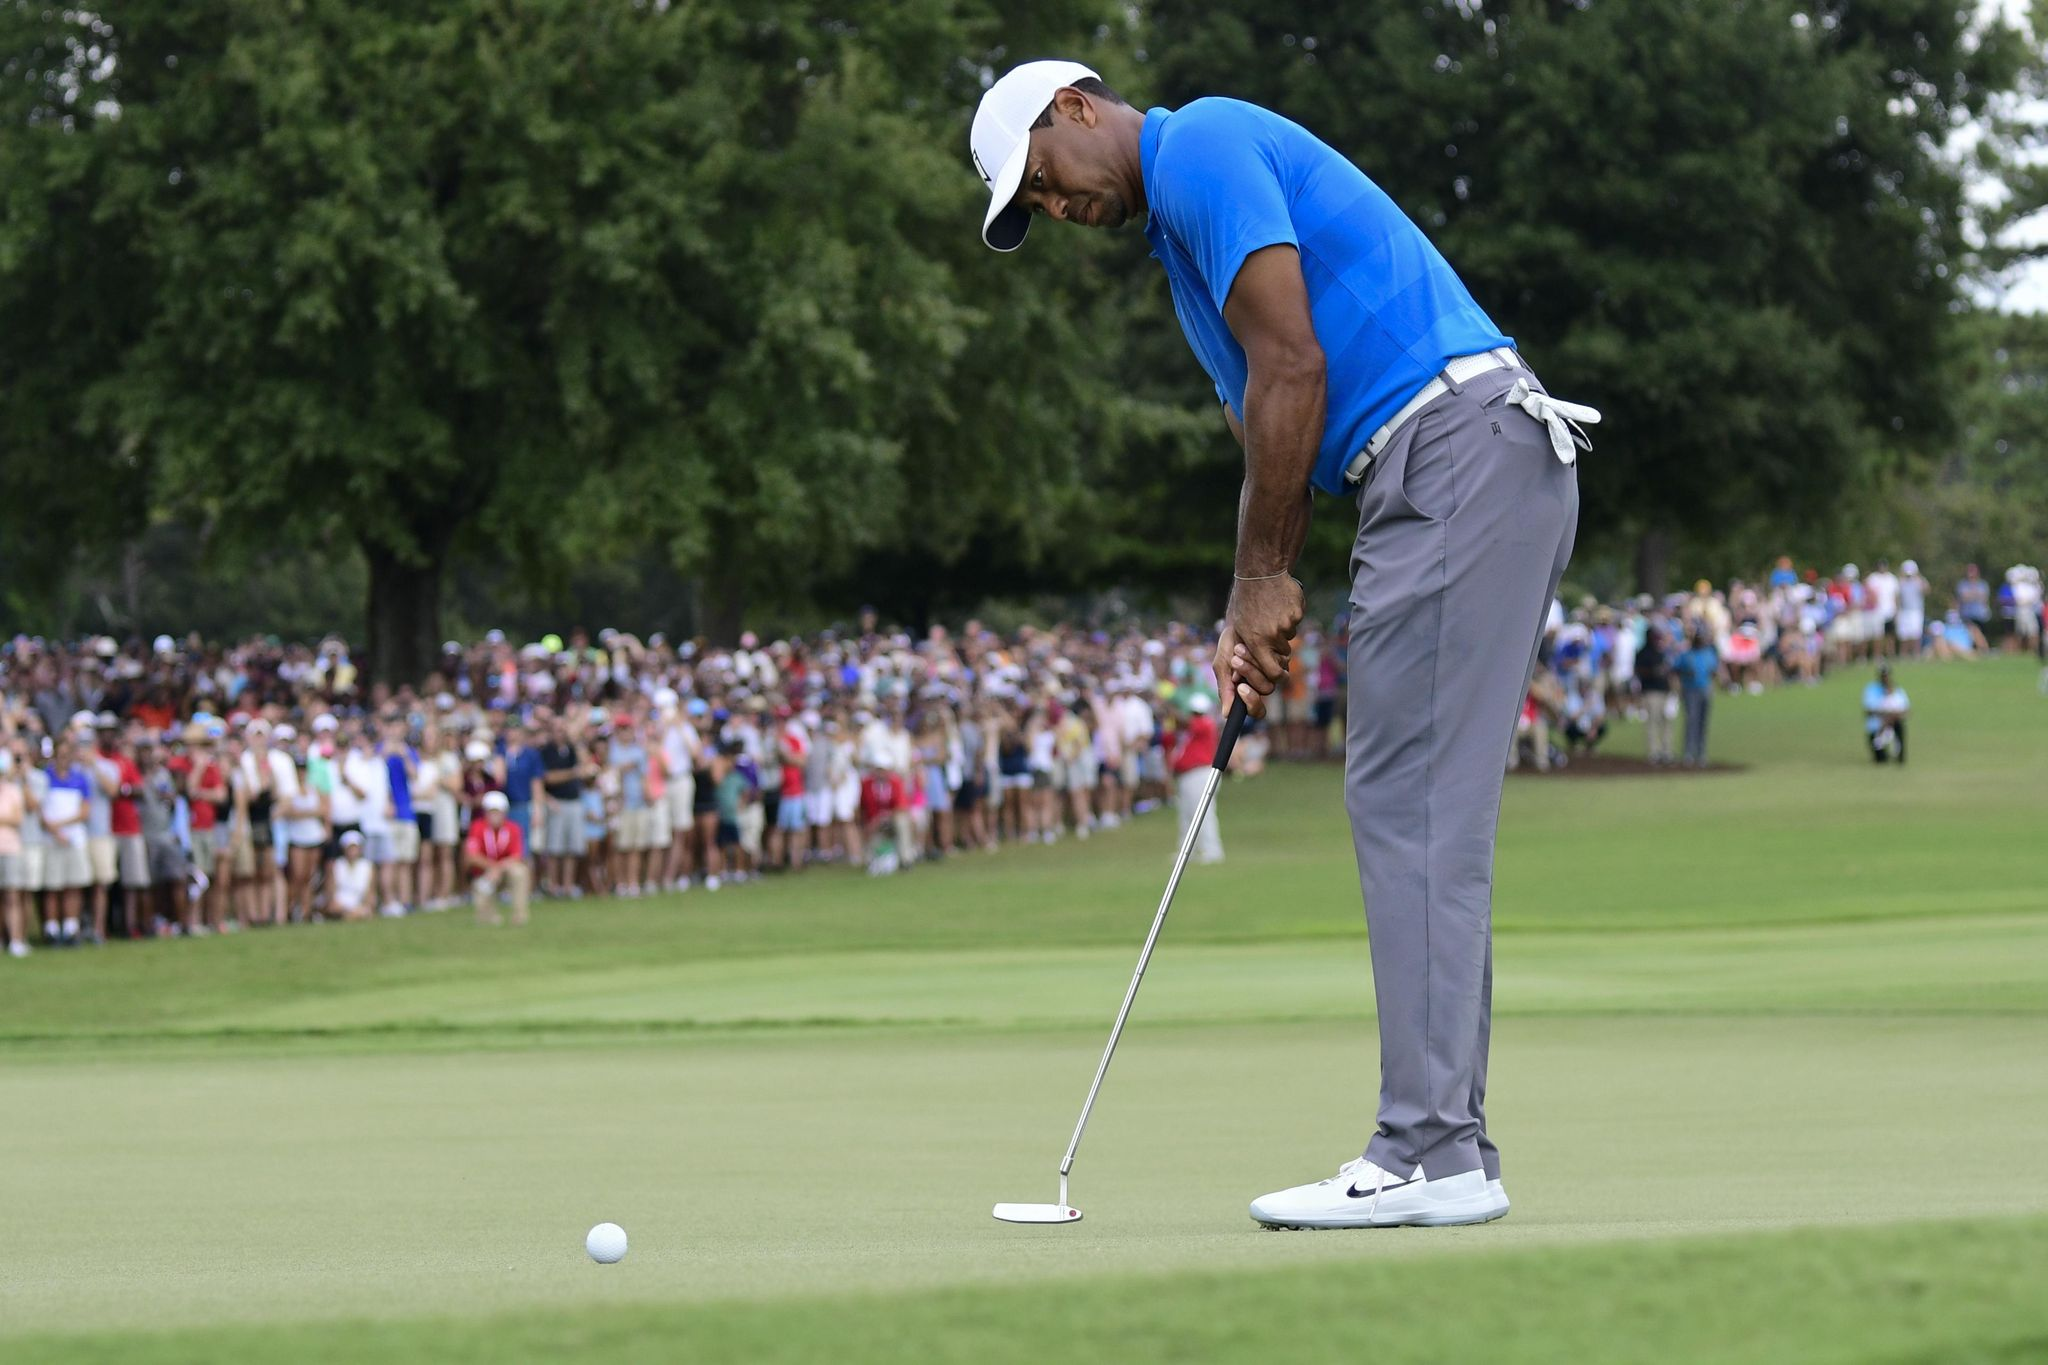 The Latest: Woods headed for victory, Rose headed for Cup - Washington Times